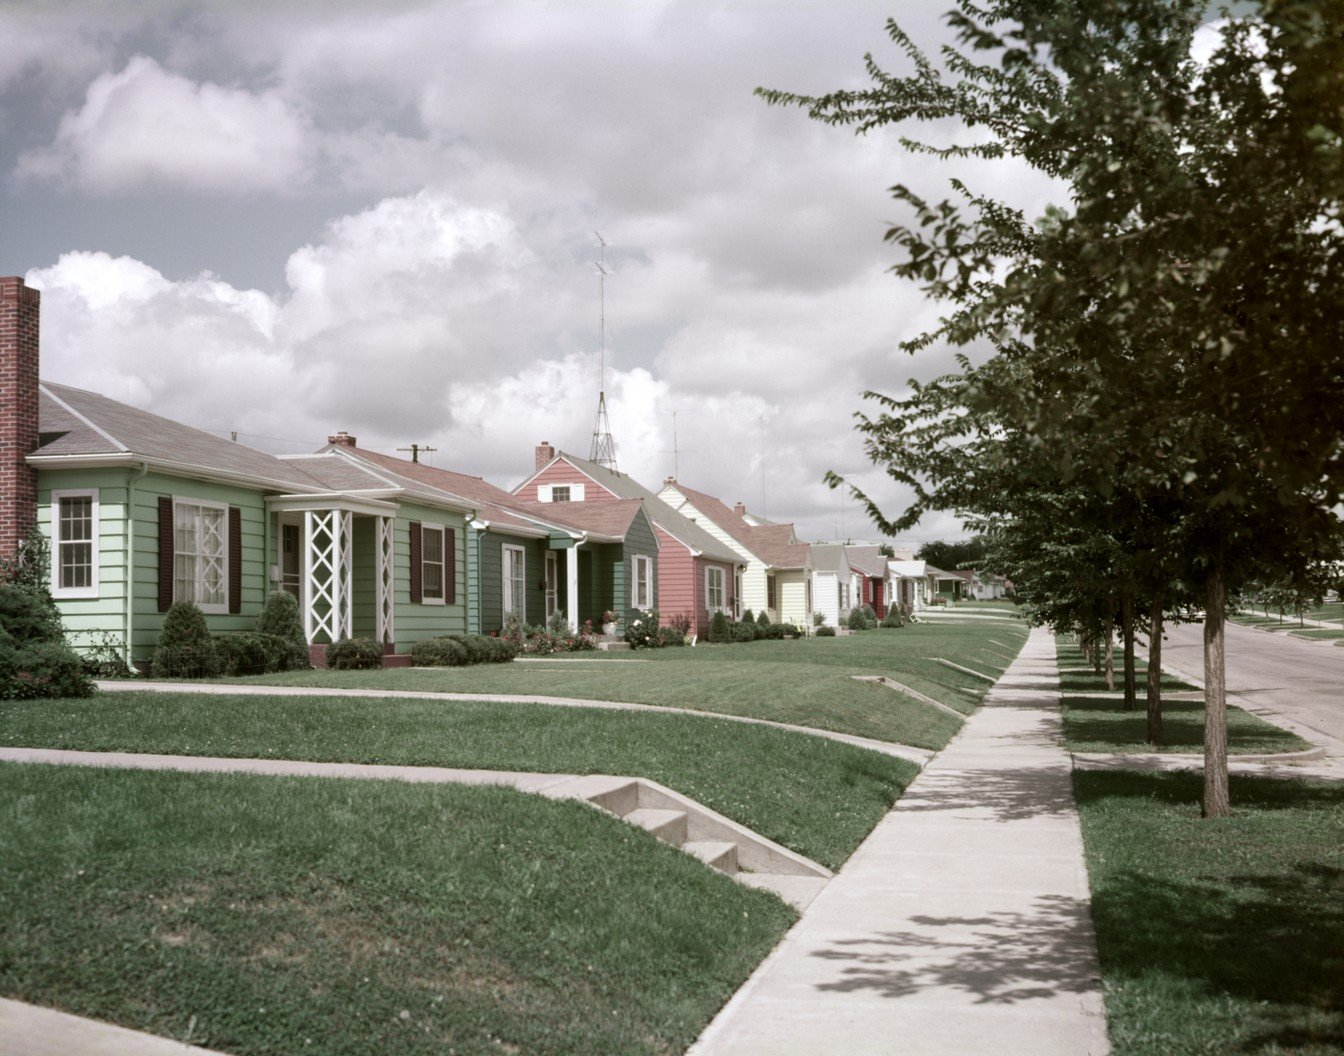 The houses may all look the same, but suburban communities, such as this Sioux Falls, South Dakota, block in 1952, also connected families along flowing streetscapes.